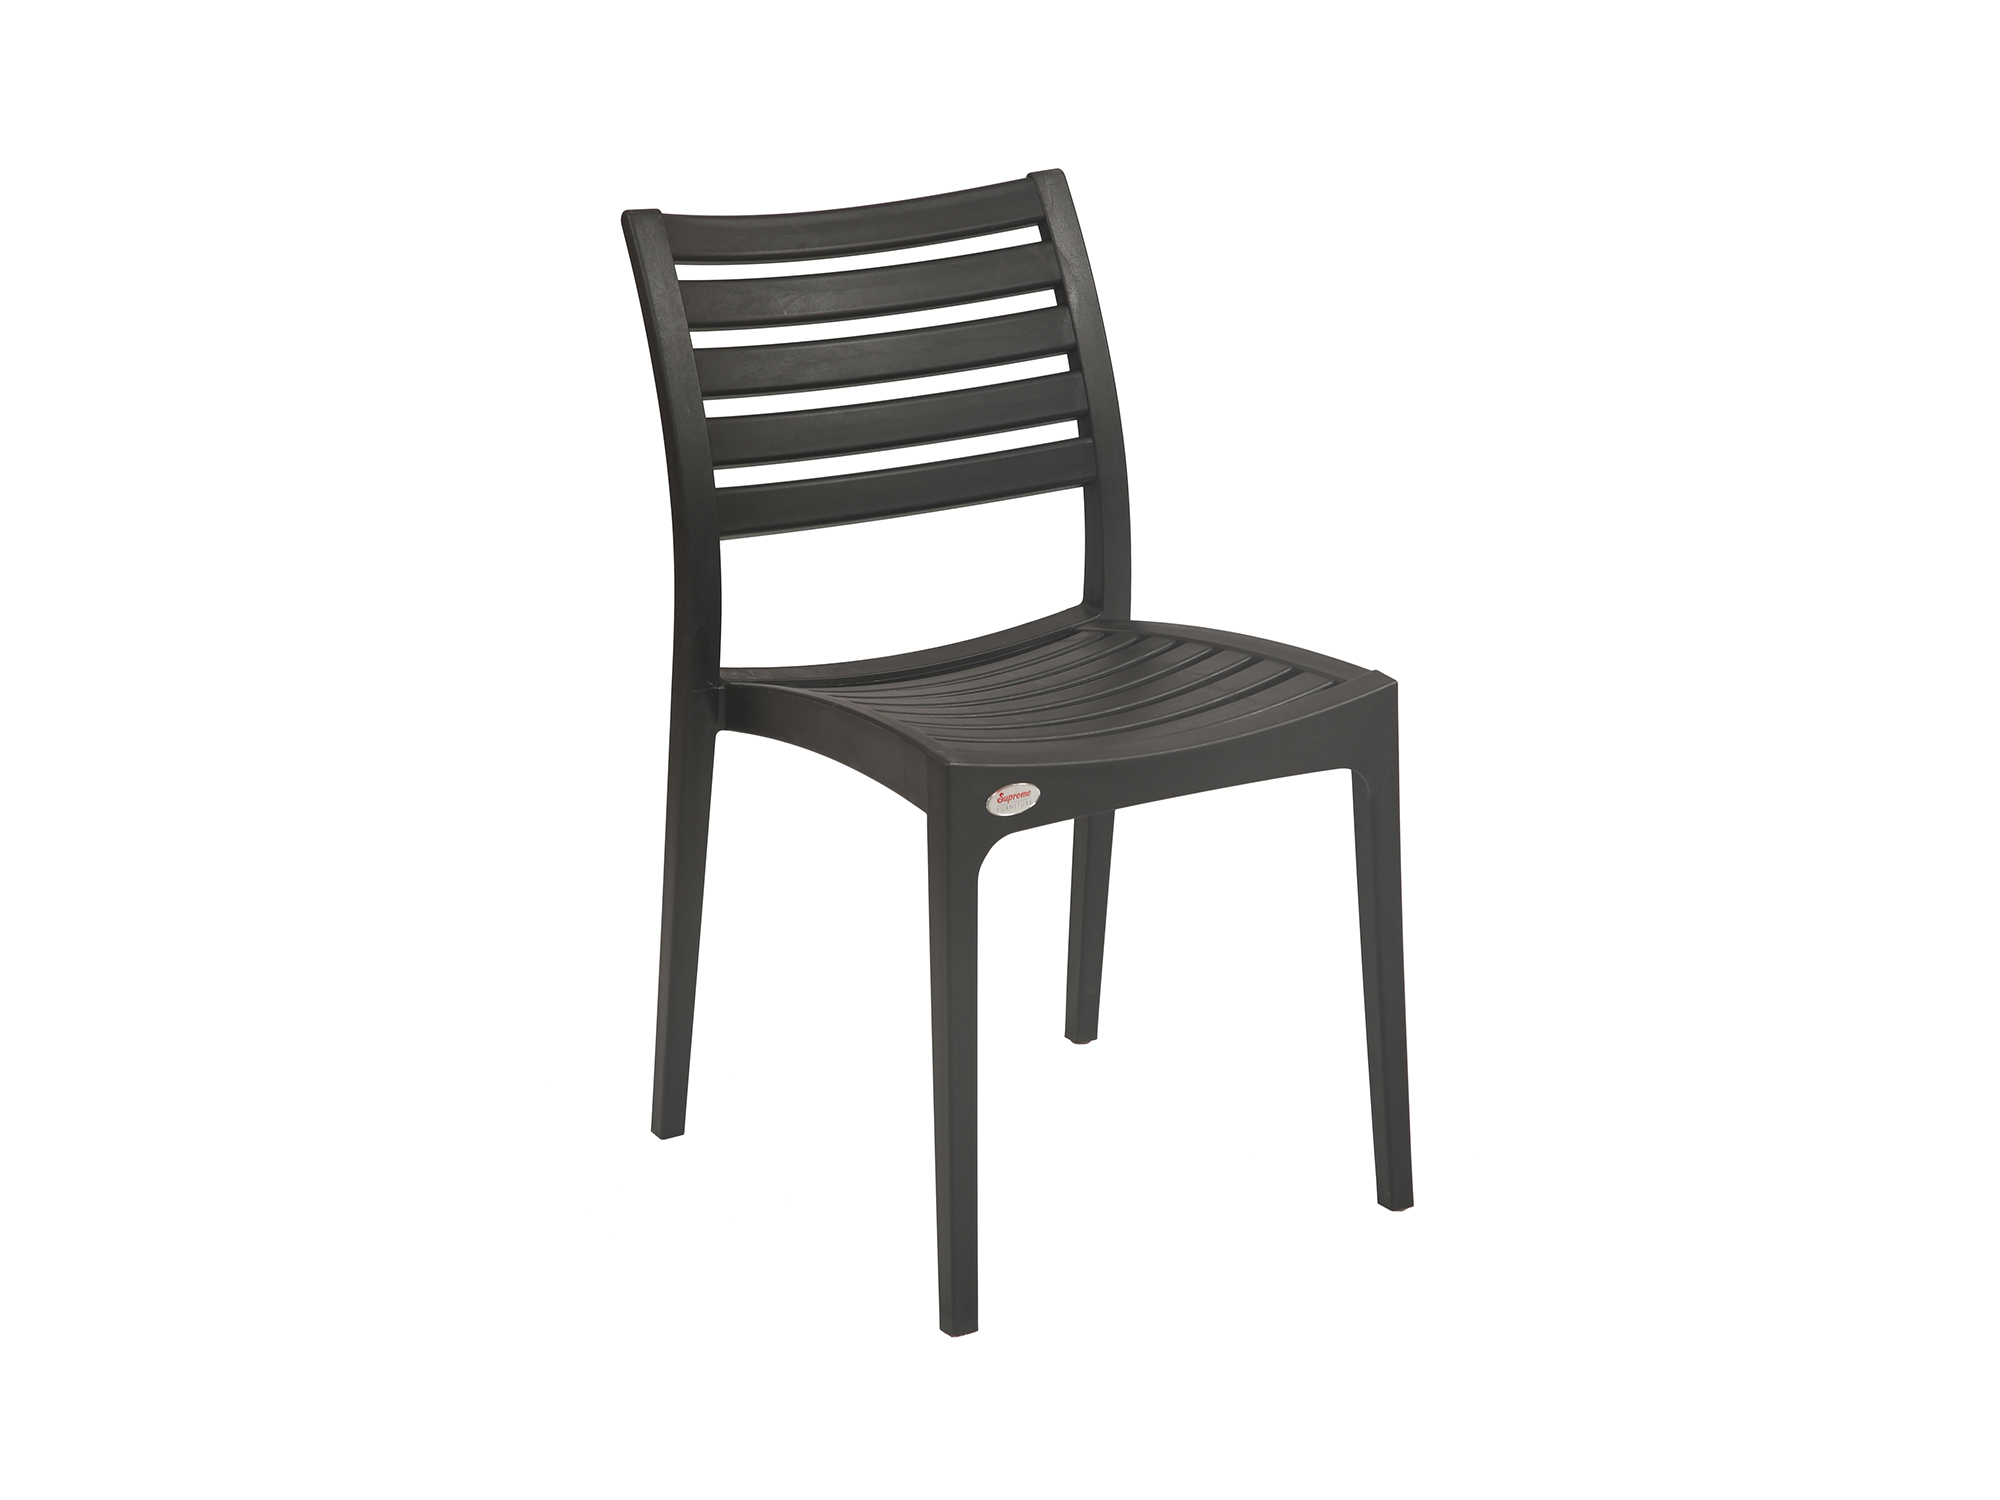 Tremendous The Ash Resin Chair Strata Furniture Alphanode Cool Chair Designs And Ideas Alphanodeonline